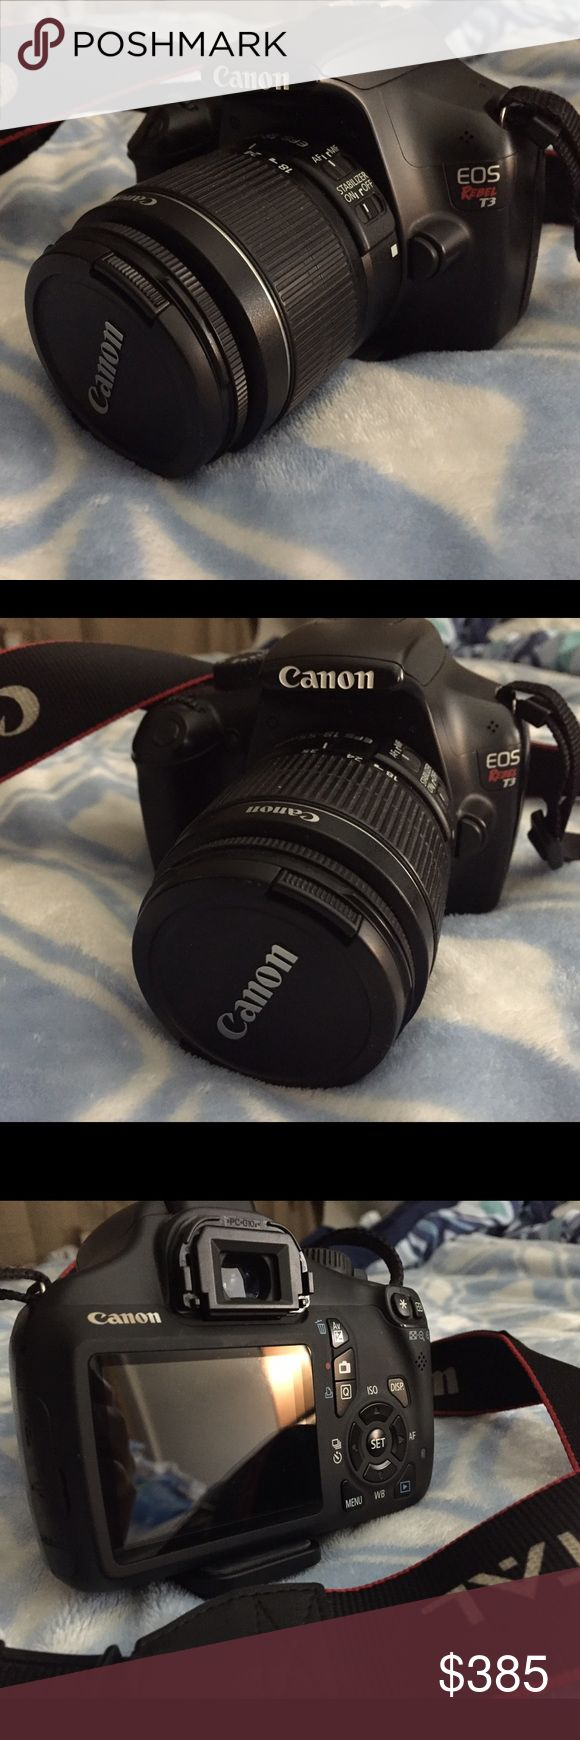 Canon T3 Used but in great and awesome condition. Nothin wrong never dropped no ding or any imperfection. Just going to upgrade my Camera 🎥😘❤️😁 will be shipping this with care ask for more pics if interested please no time waster or low ⛹️‍♀️ ballers. This listing is for the Lense+body...(charger) is MISSING in Action.. (will look for it and price reflects posh fees and missing charger) 😆 will look use my other camera's charger to charge to show it actually turns on. canon Other